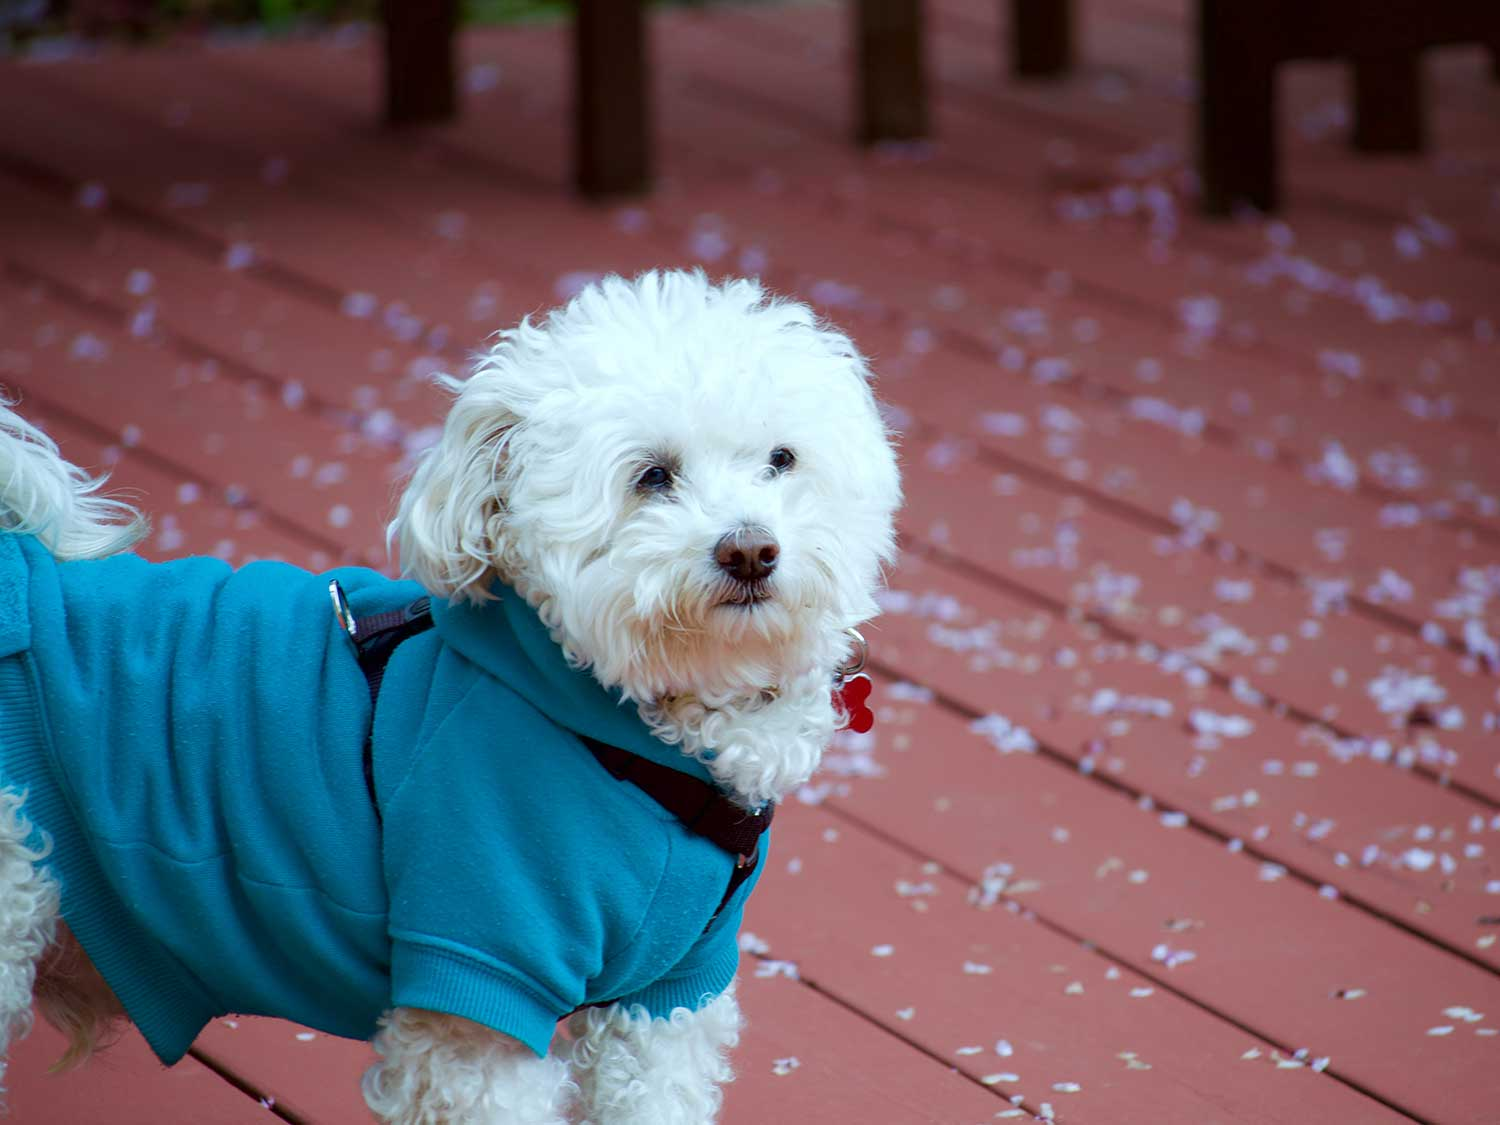 Dog outside in cold wearing jacket